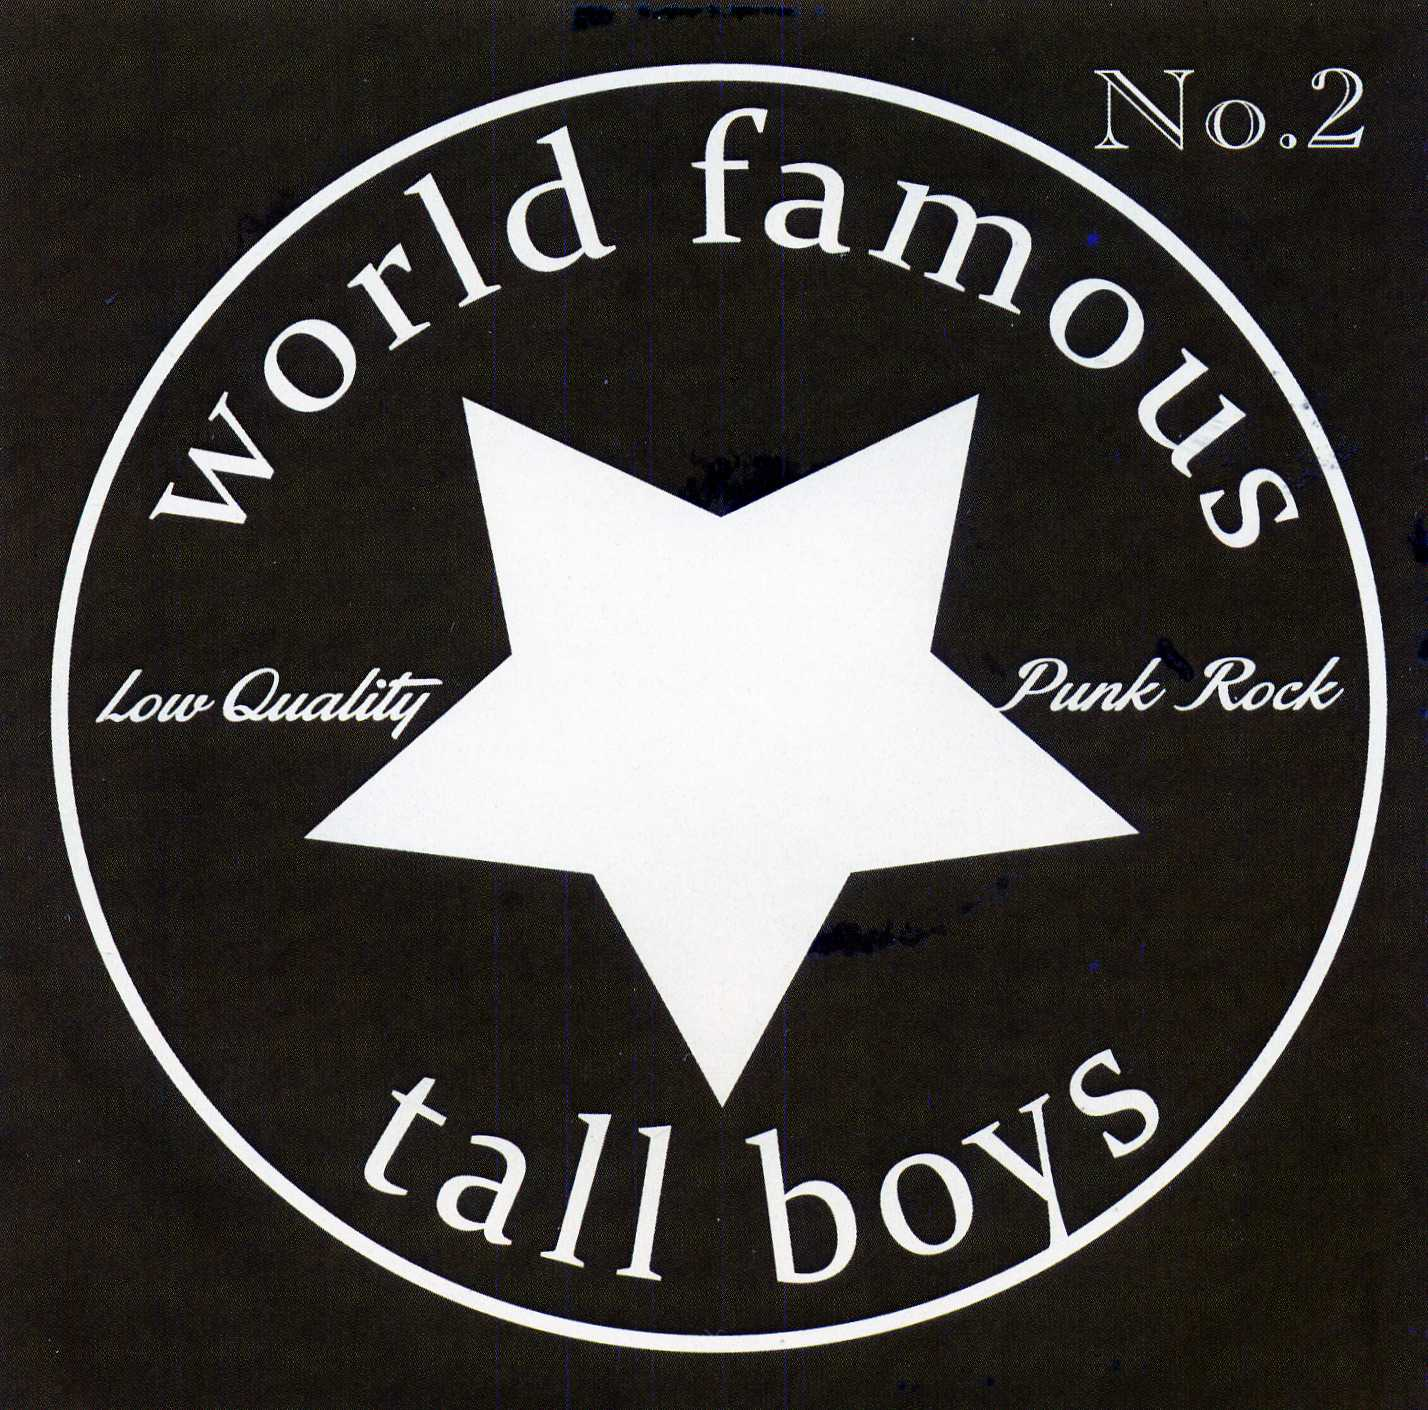 World Famous Tall Boys – No. 2